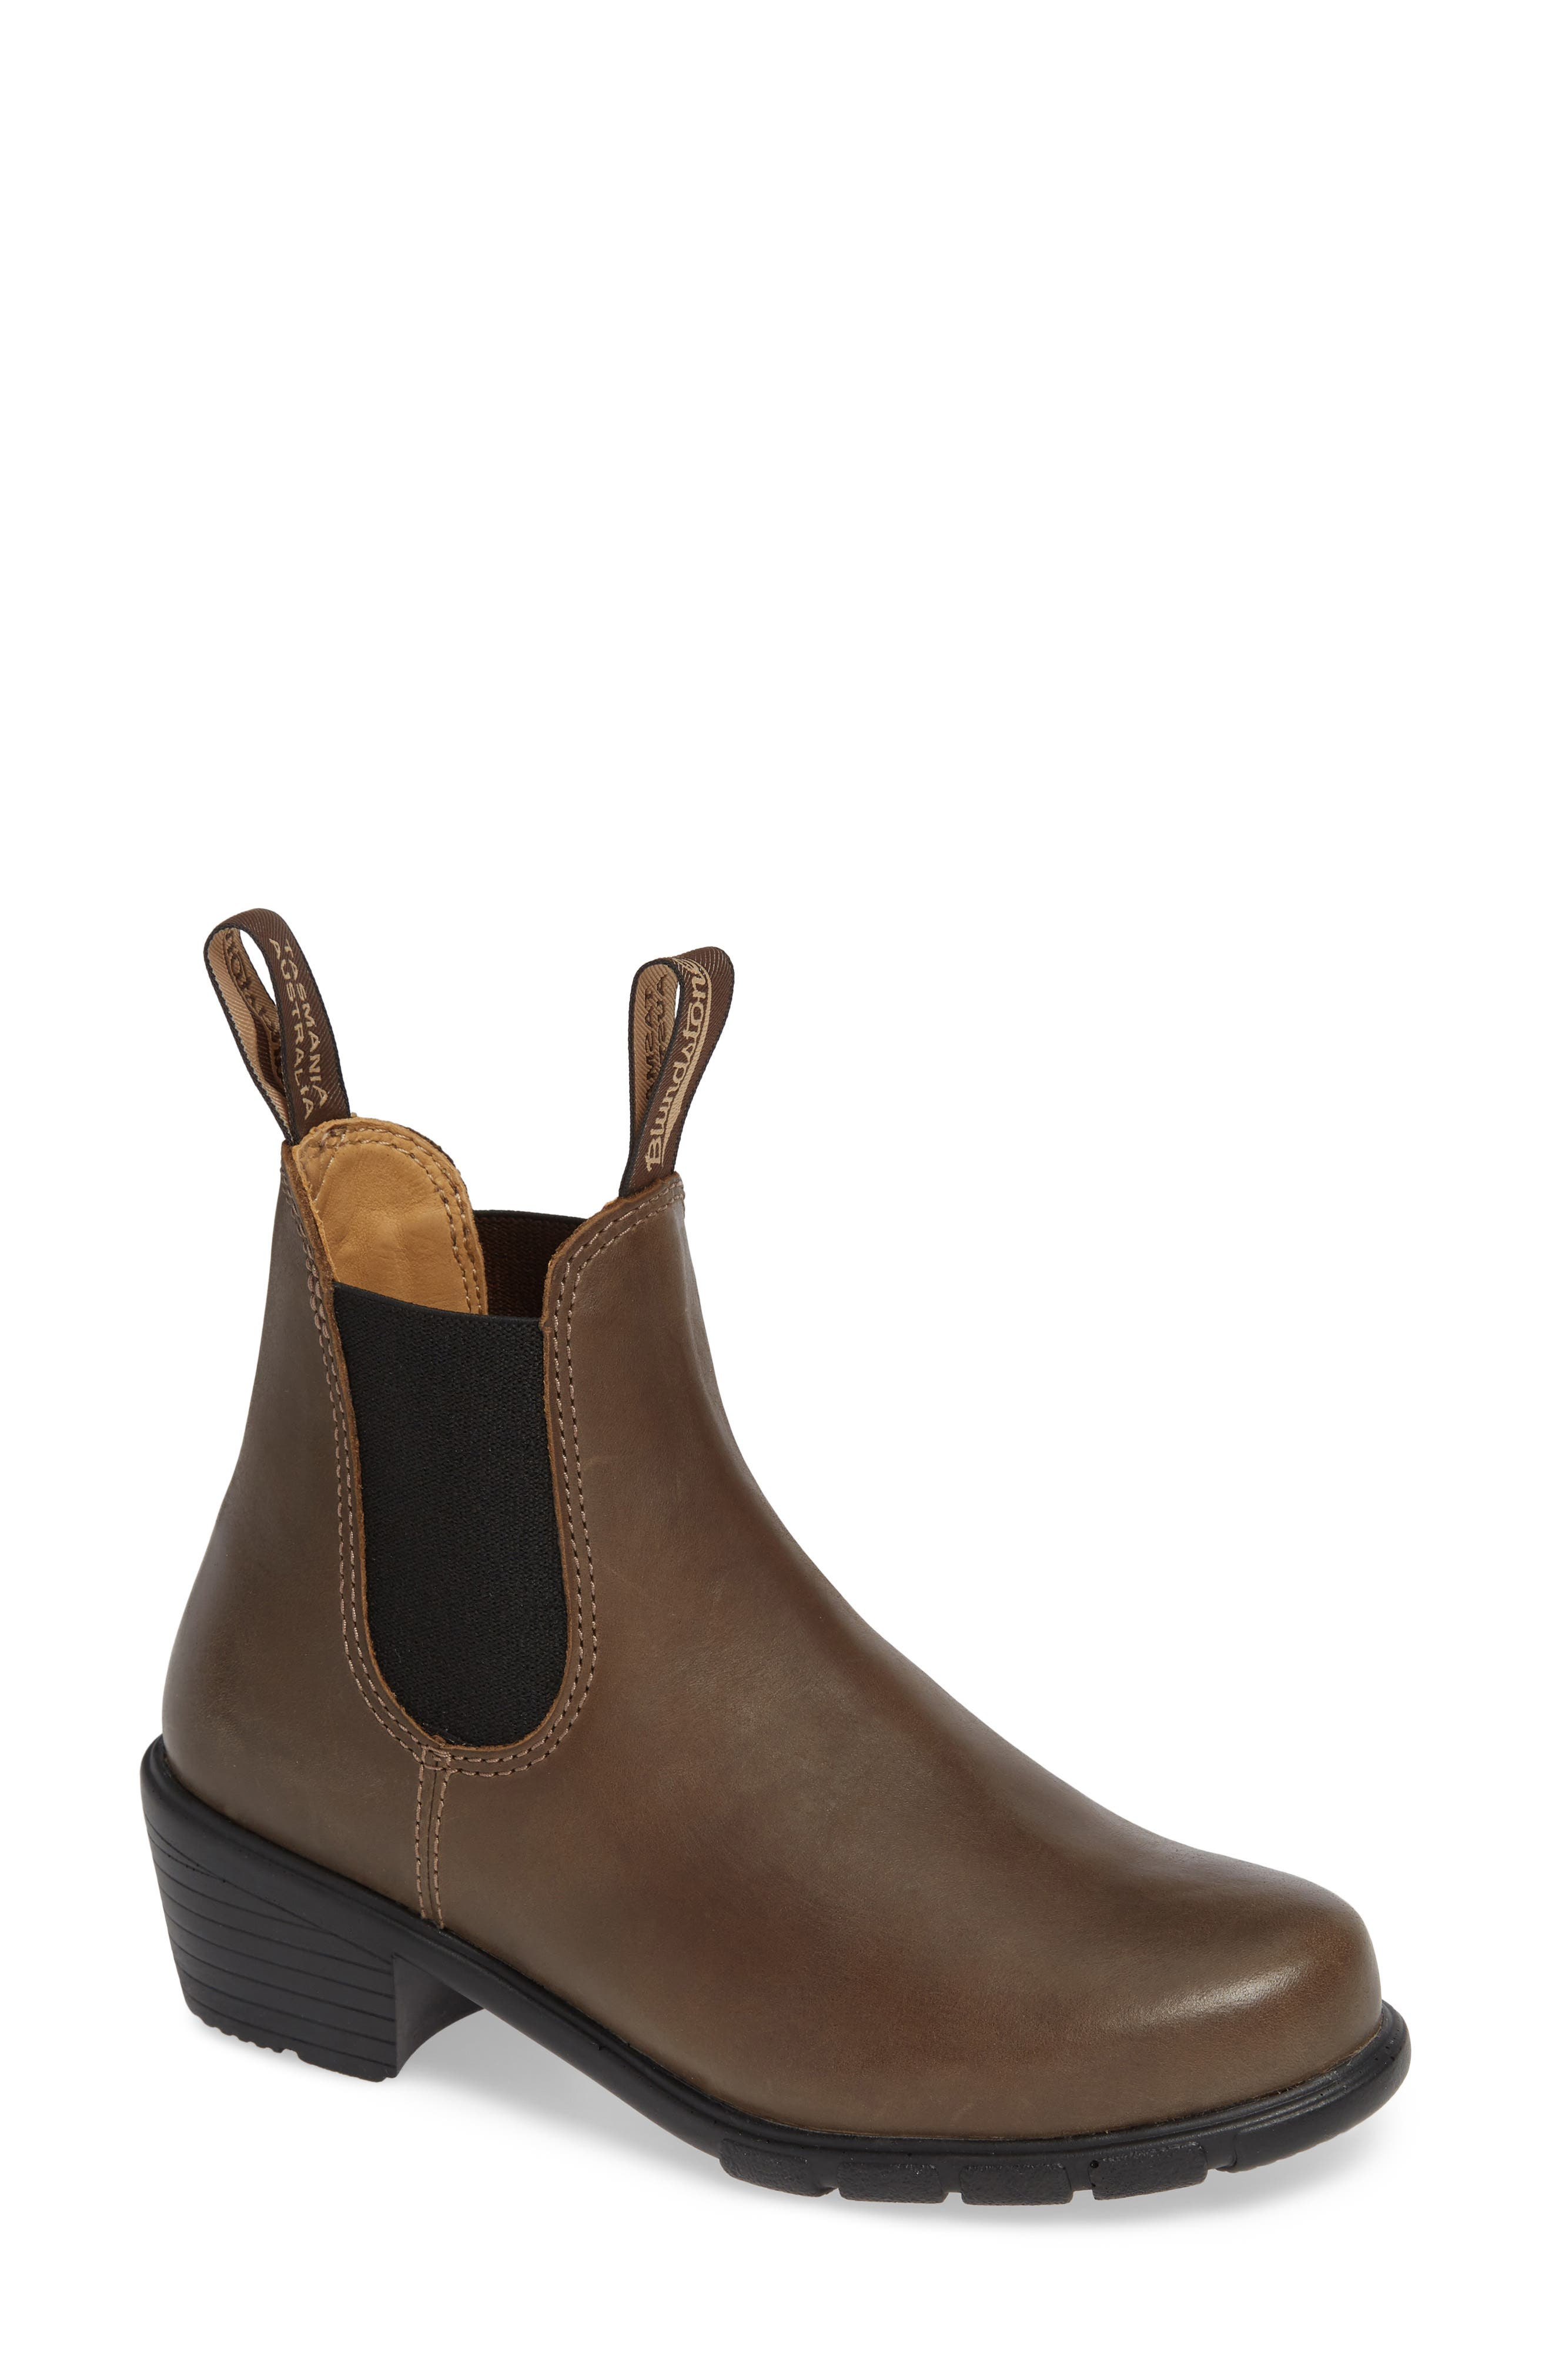 BLUNDSTONE FOOTWEAR Blundstone 1671 Chelsea Boot, Main, color, ANTIQUE TAUPE LEATHER